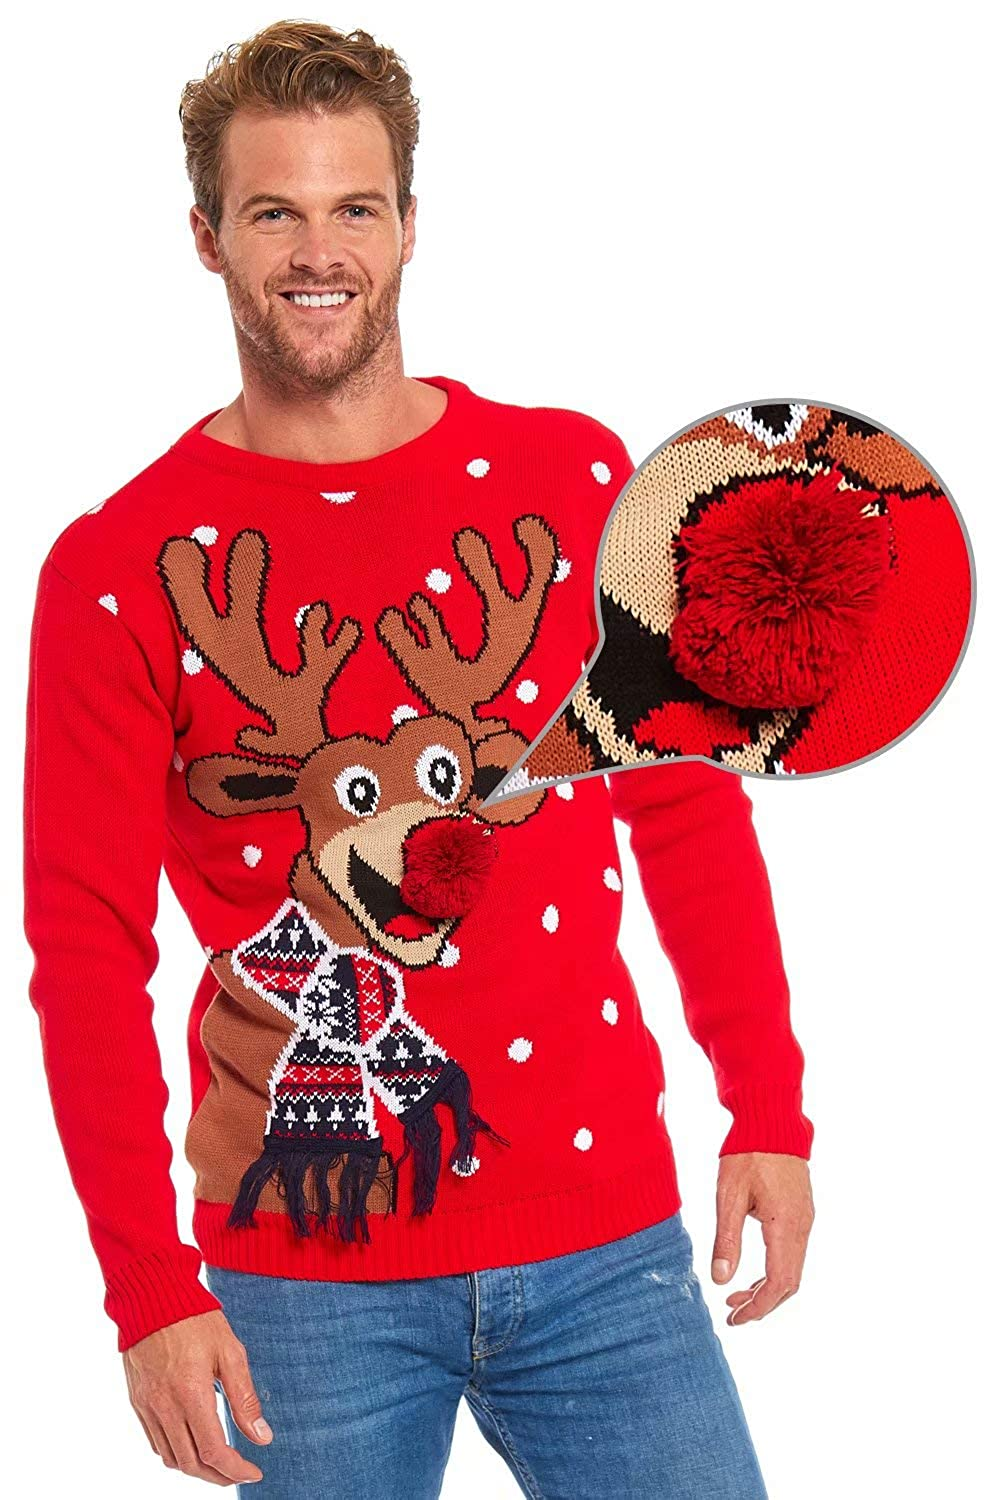 Unisex Men's Ugly Christmas Sweater Funny Novelty Xmas Pullover